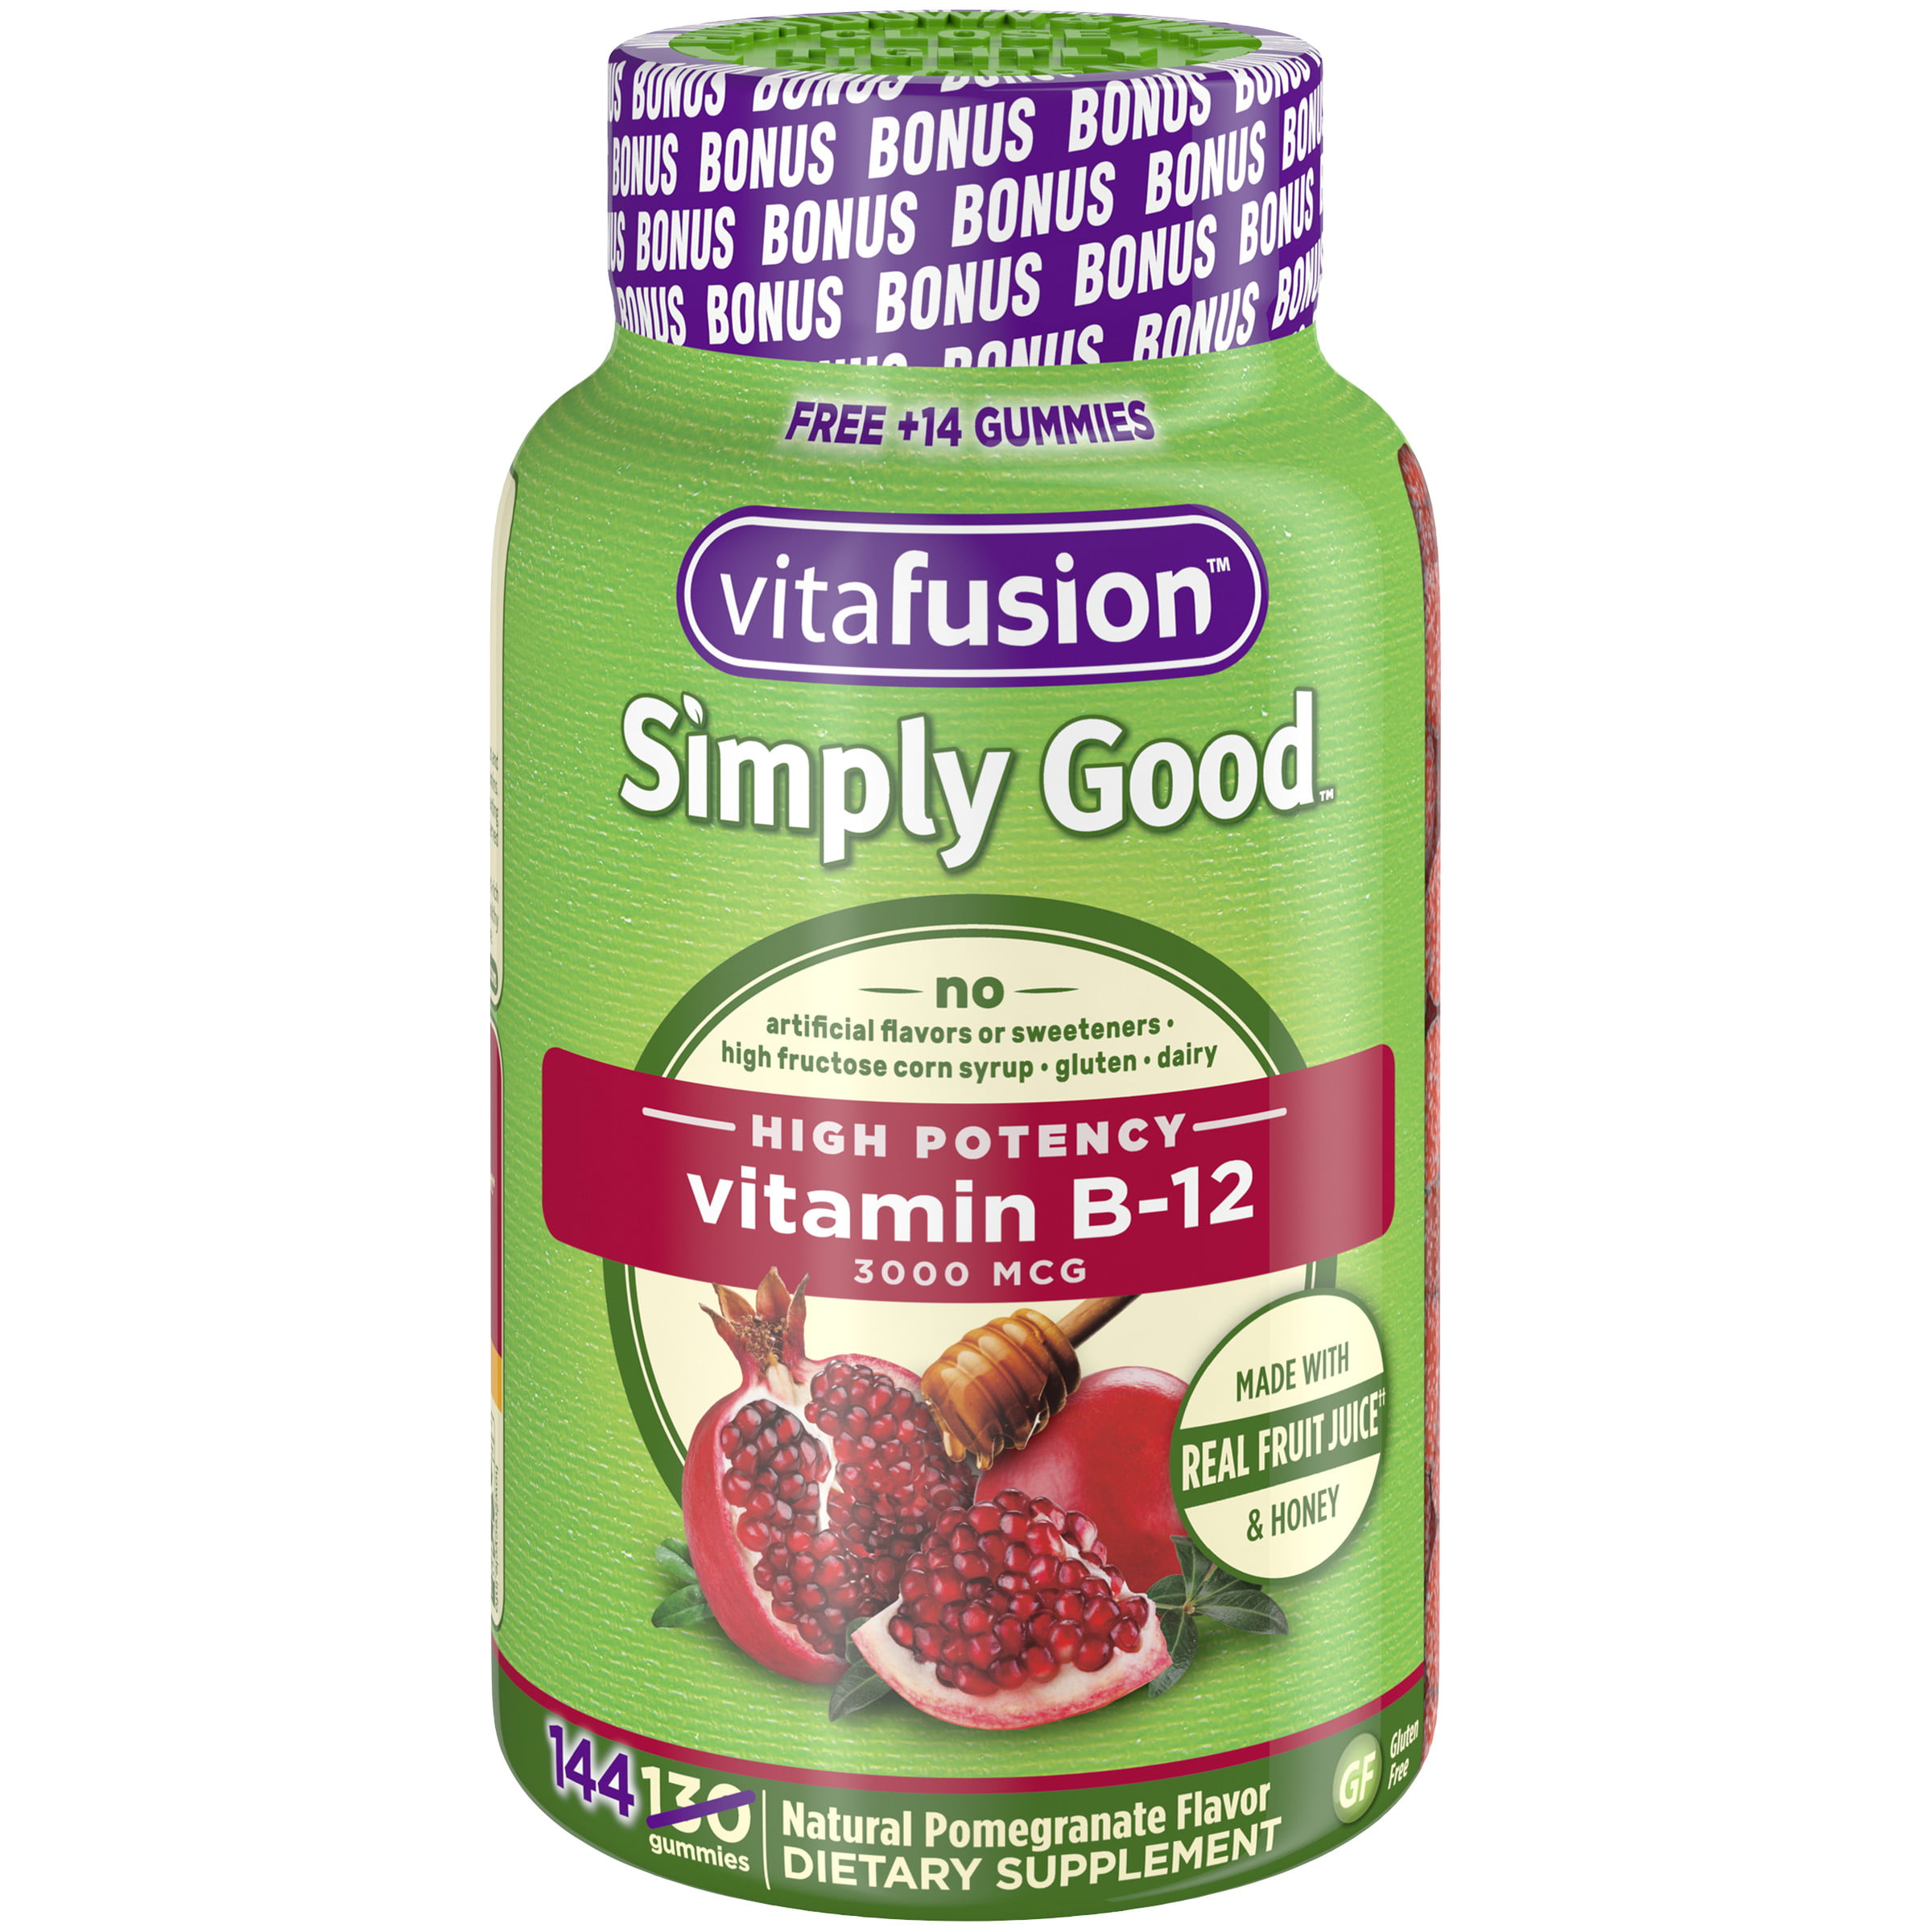 what is vitamin d12 good for